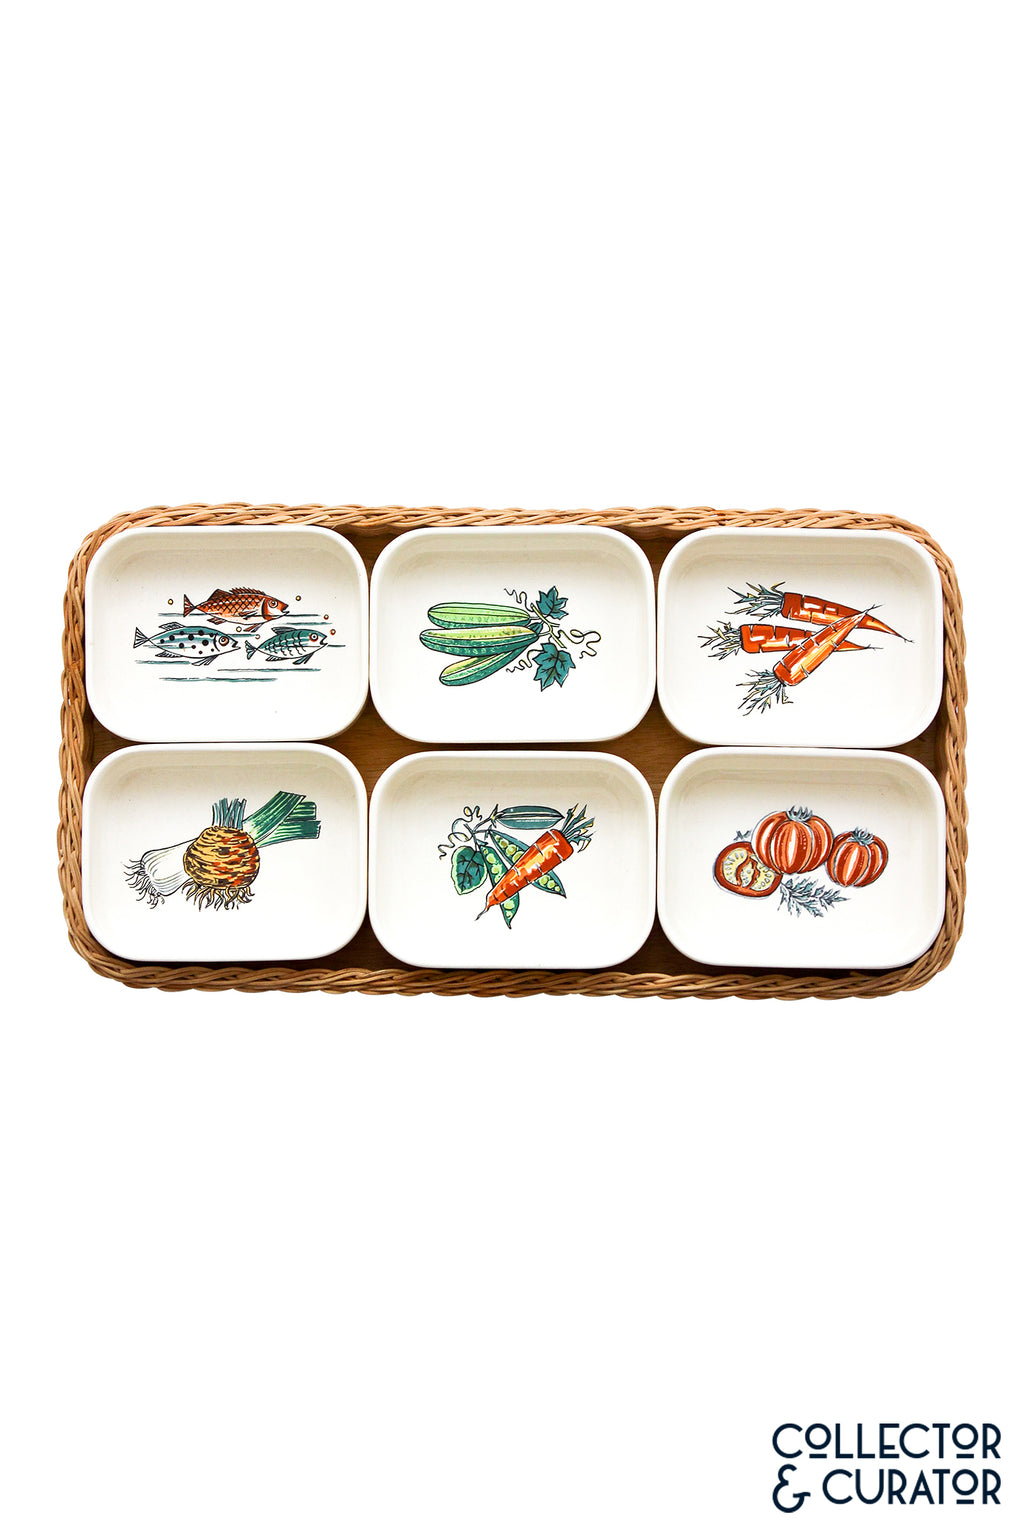 Waechtersbach Painted Dishes in Wicker Serving Tray Mid Century Modern